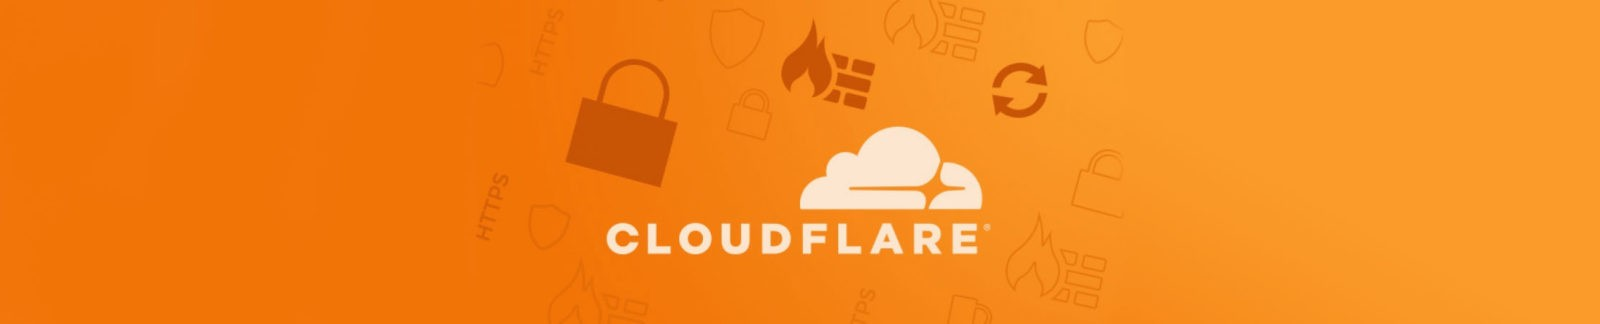 My CloudFlare Account Got Hacked and a Site 301 Redirected